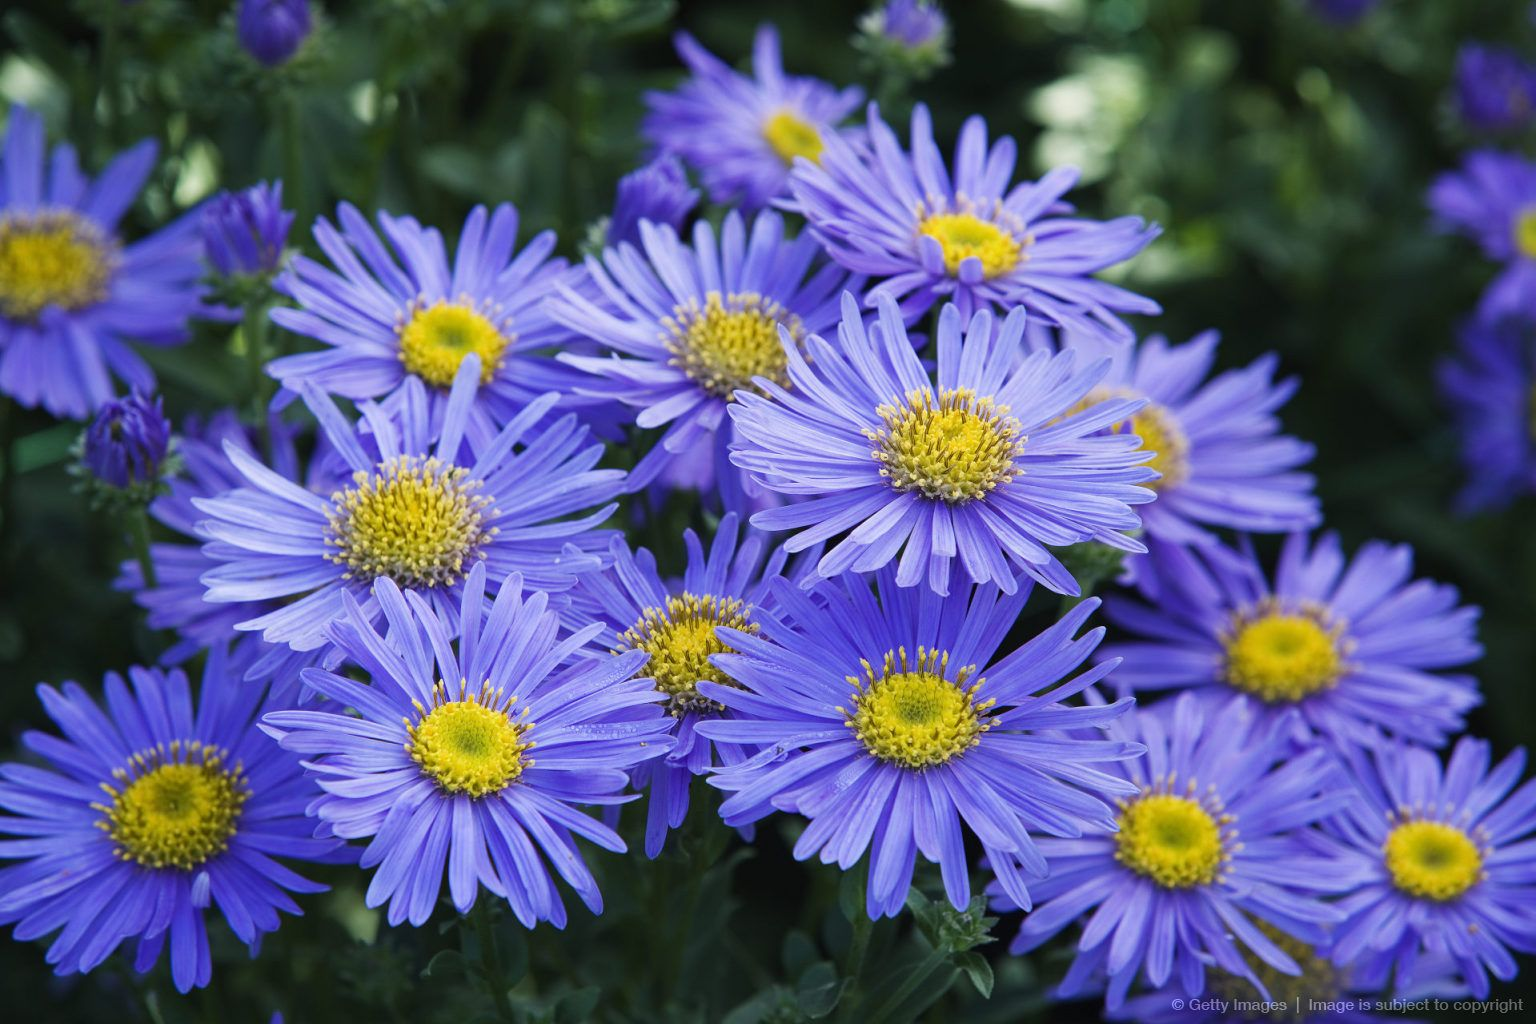 Image detail for michaelmas daisies aster x frikartii monch close image detail for michaelmas daisies aster x frikartii monch close up plant portrait izmirmasajfo Image collections